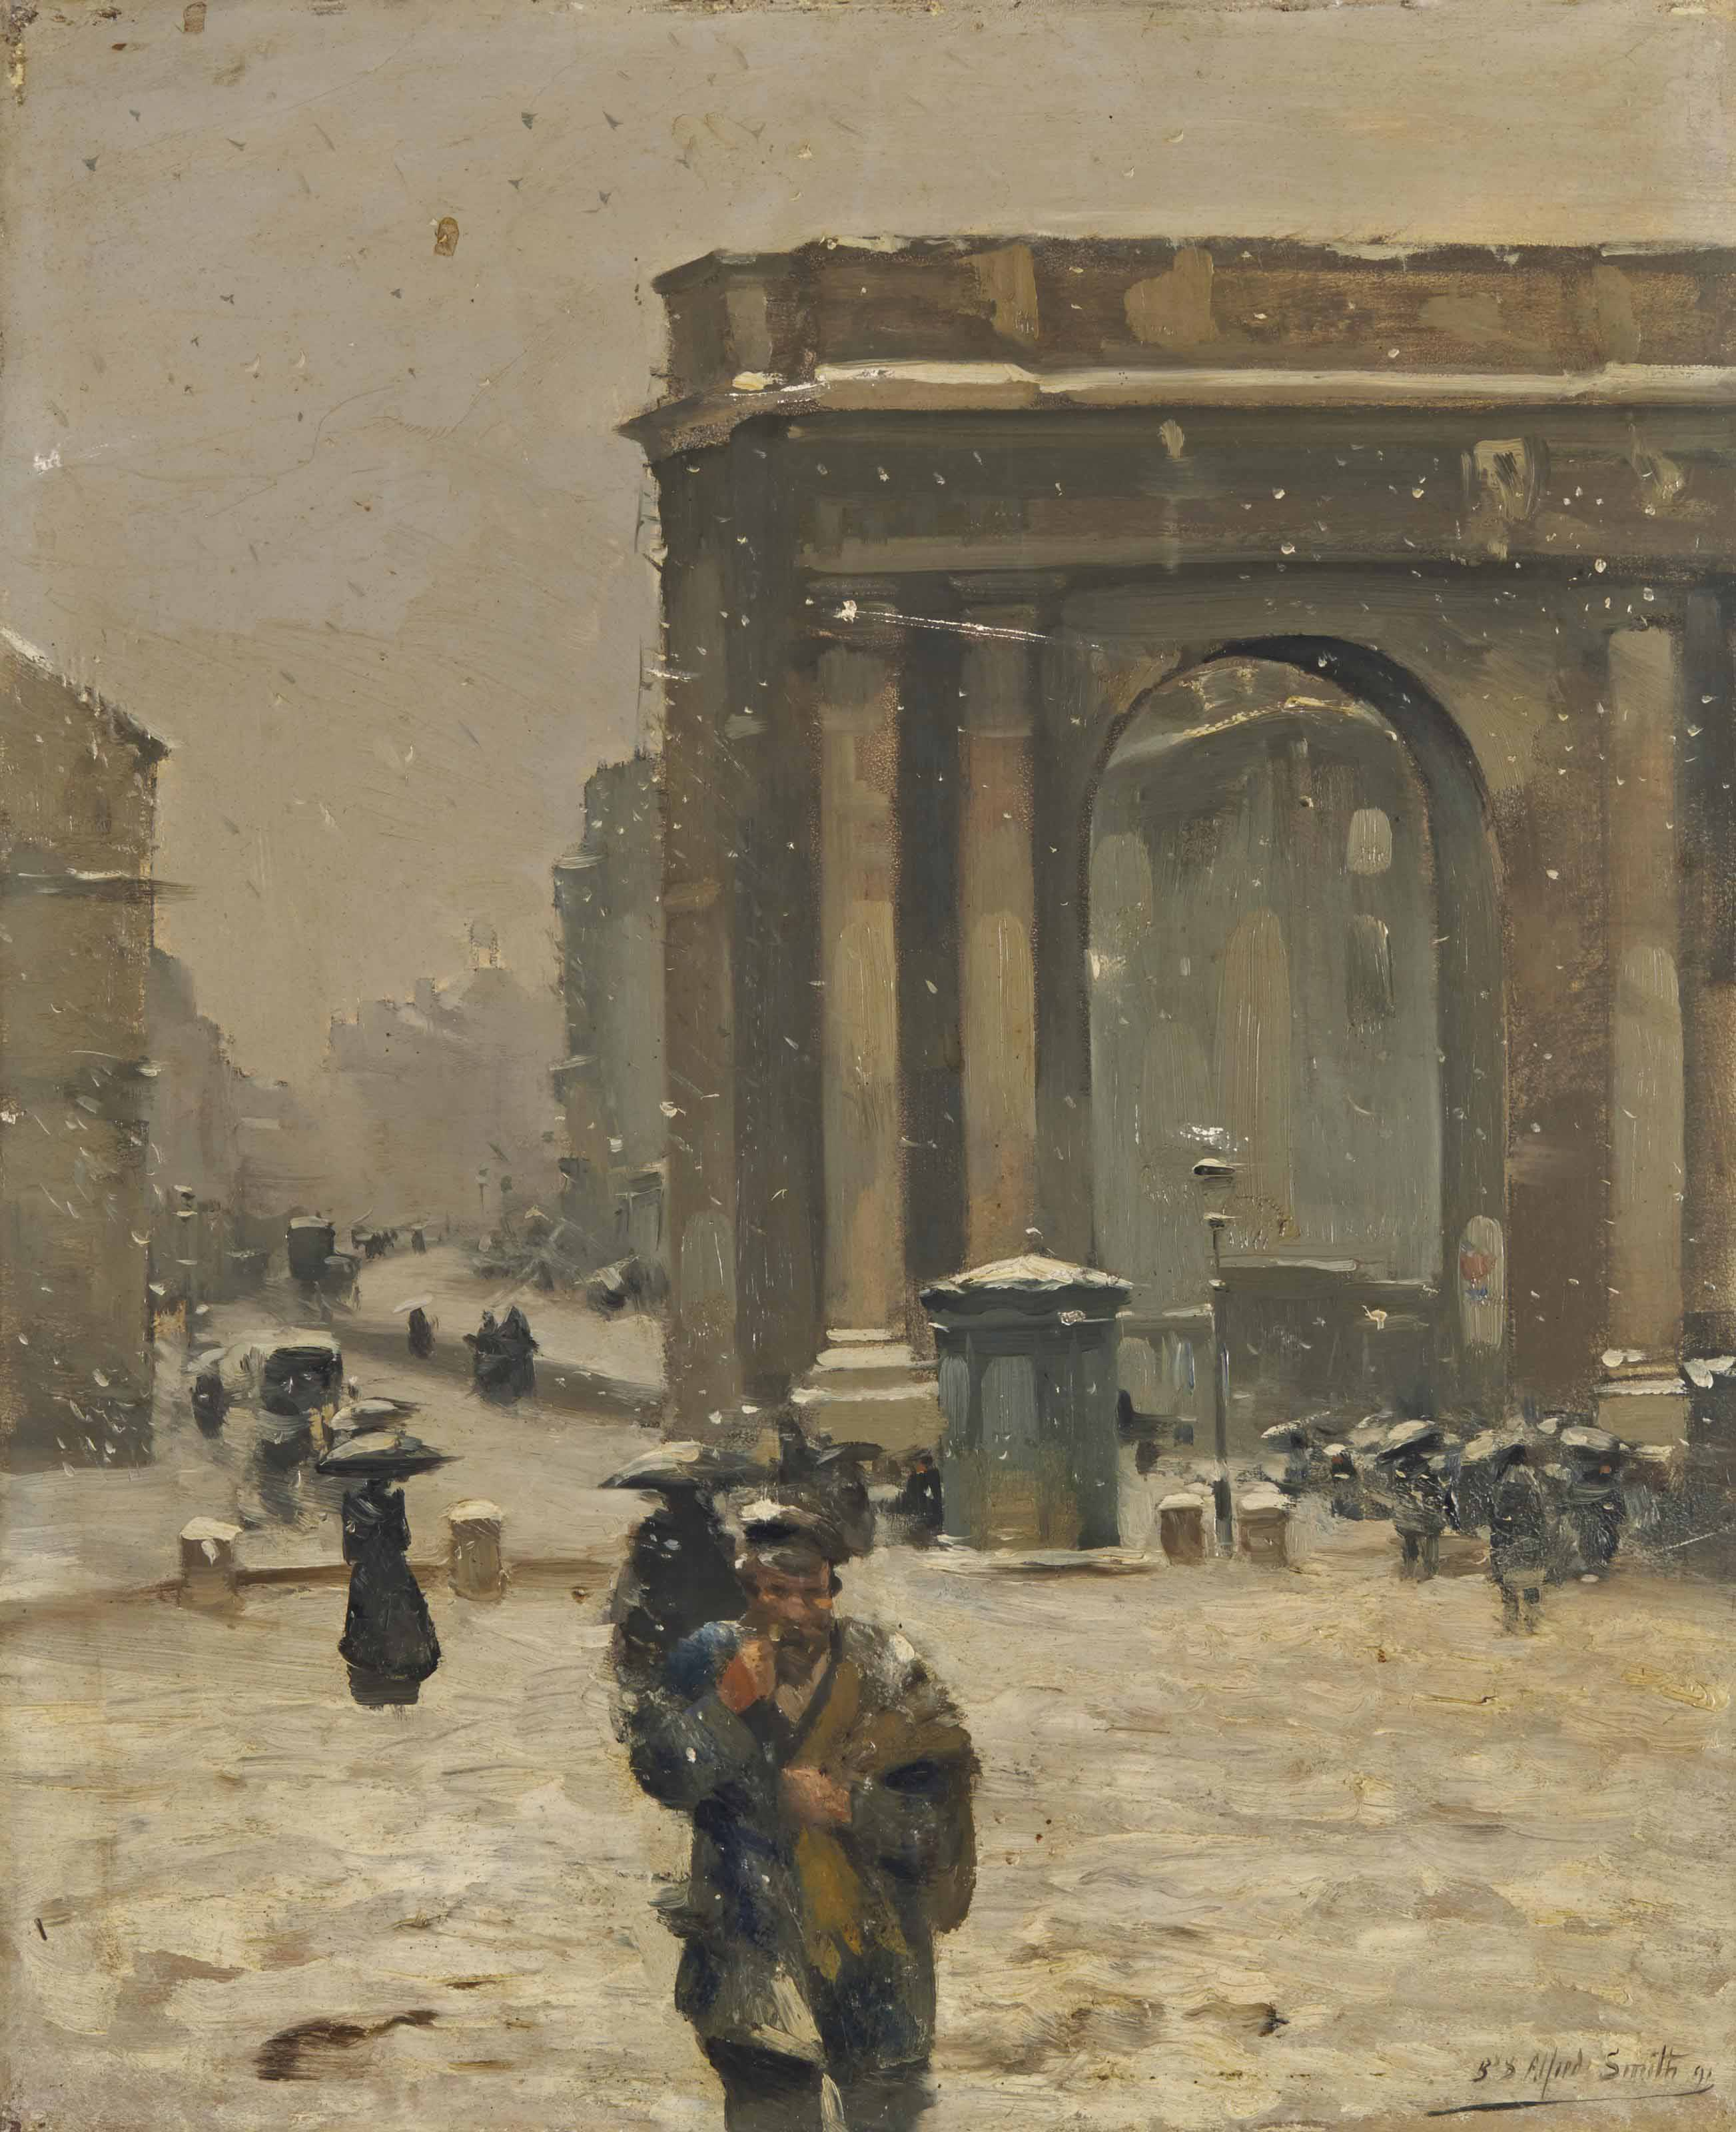 ALFRED SMITH (BORDEAUX 1854-1932)